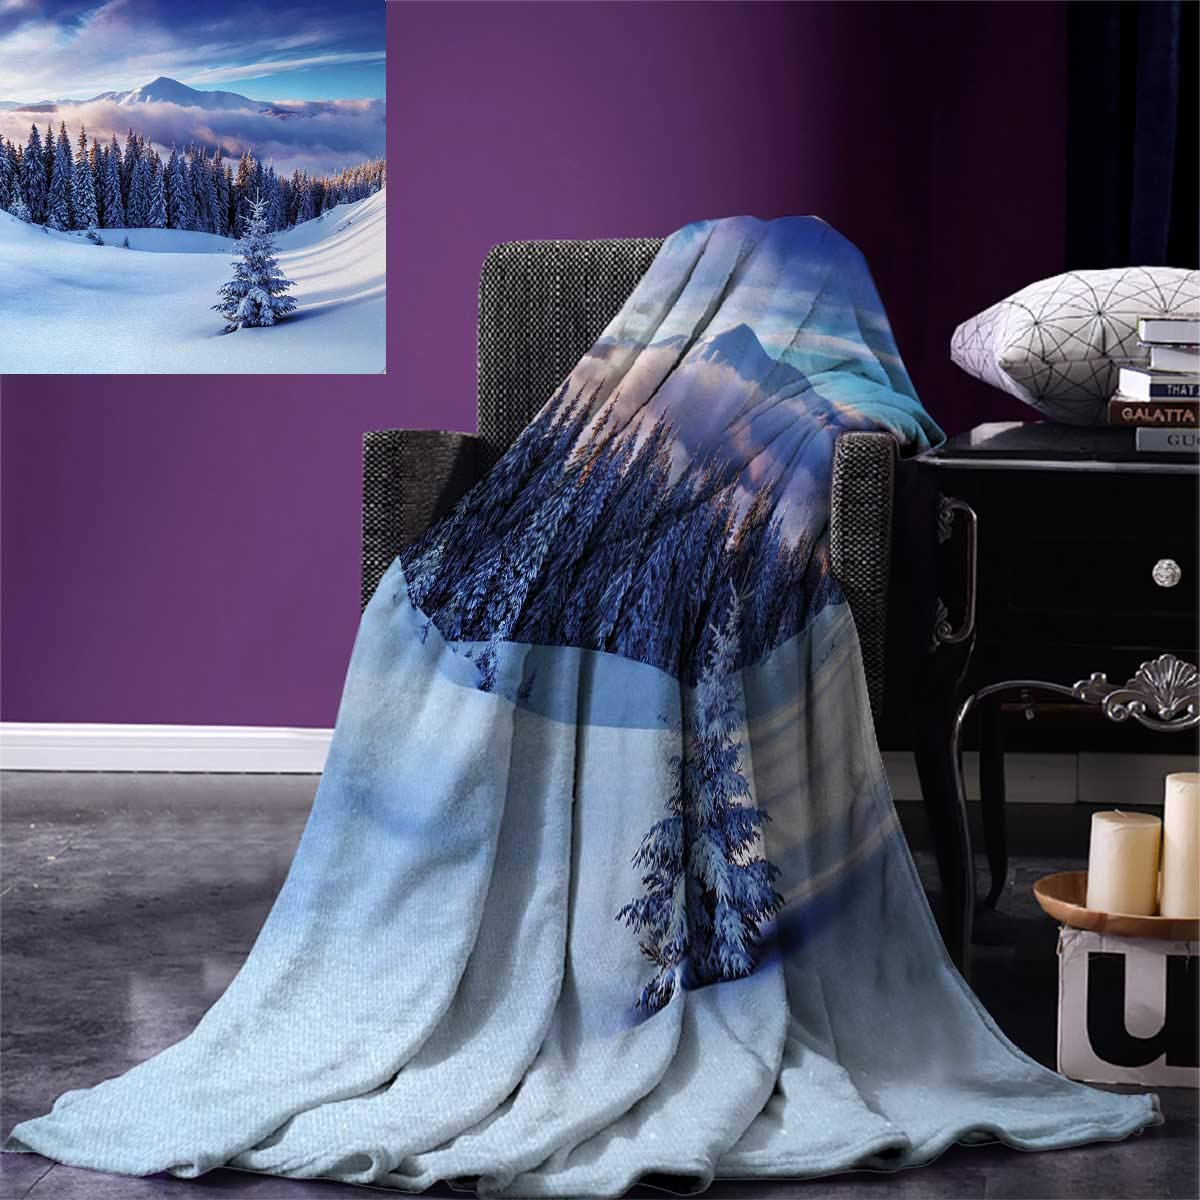 Winter Digital Printing Blanket Surreal Winter Scenery with High Mountain Peaks and Snowy Coniferous Pine Trees Summer Quilt Comforter 80''x60'' Blue White